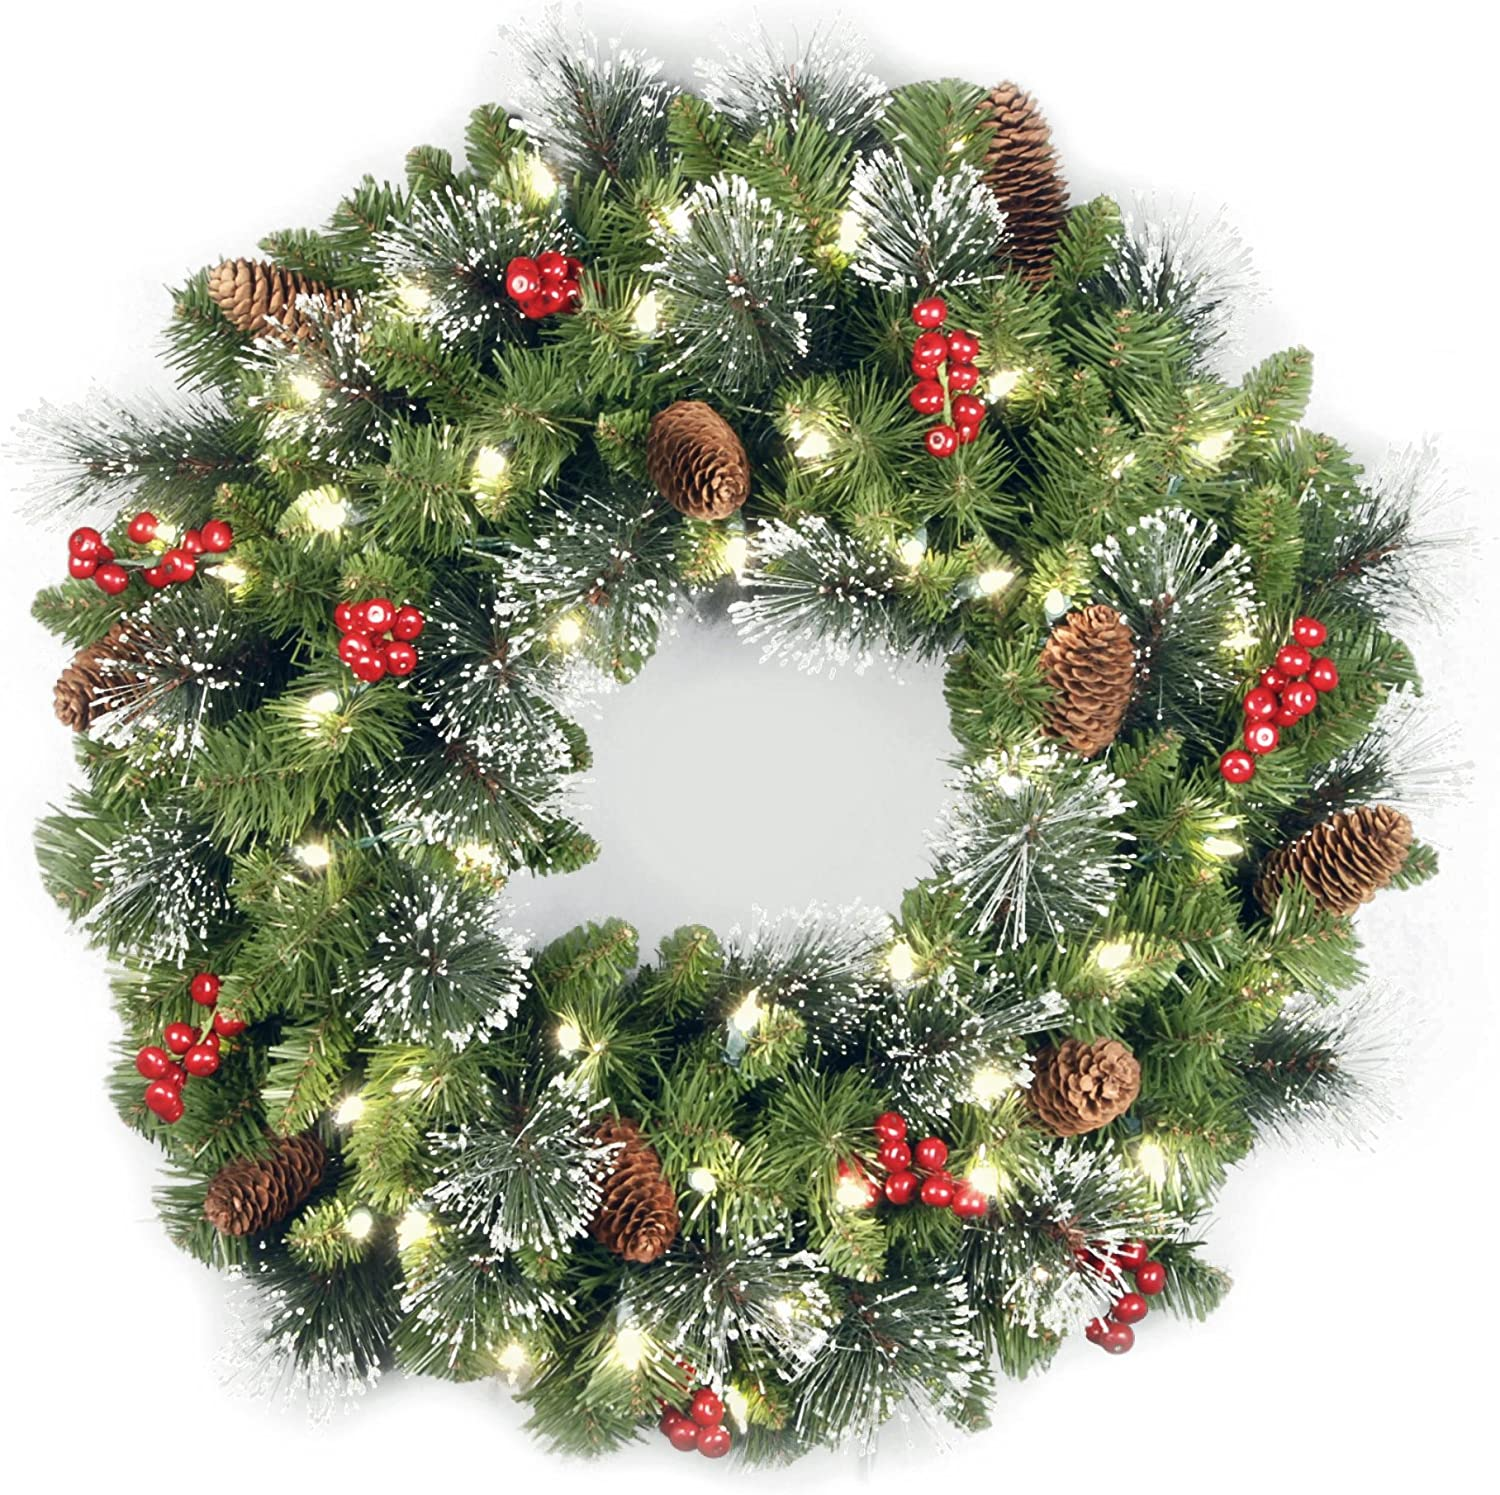 Amazon Com National Tree 24 Inch Crestwood Spruce Wreath With Silver Bristles Cones Red Berries Glitter And 50 Clear Lights Cw7 306 24w Home Kitchen